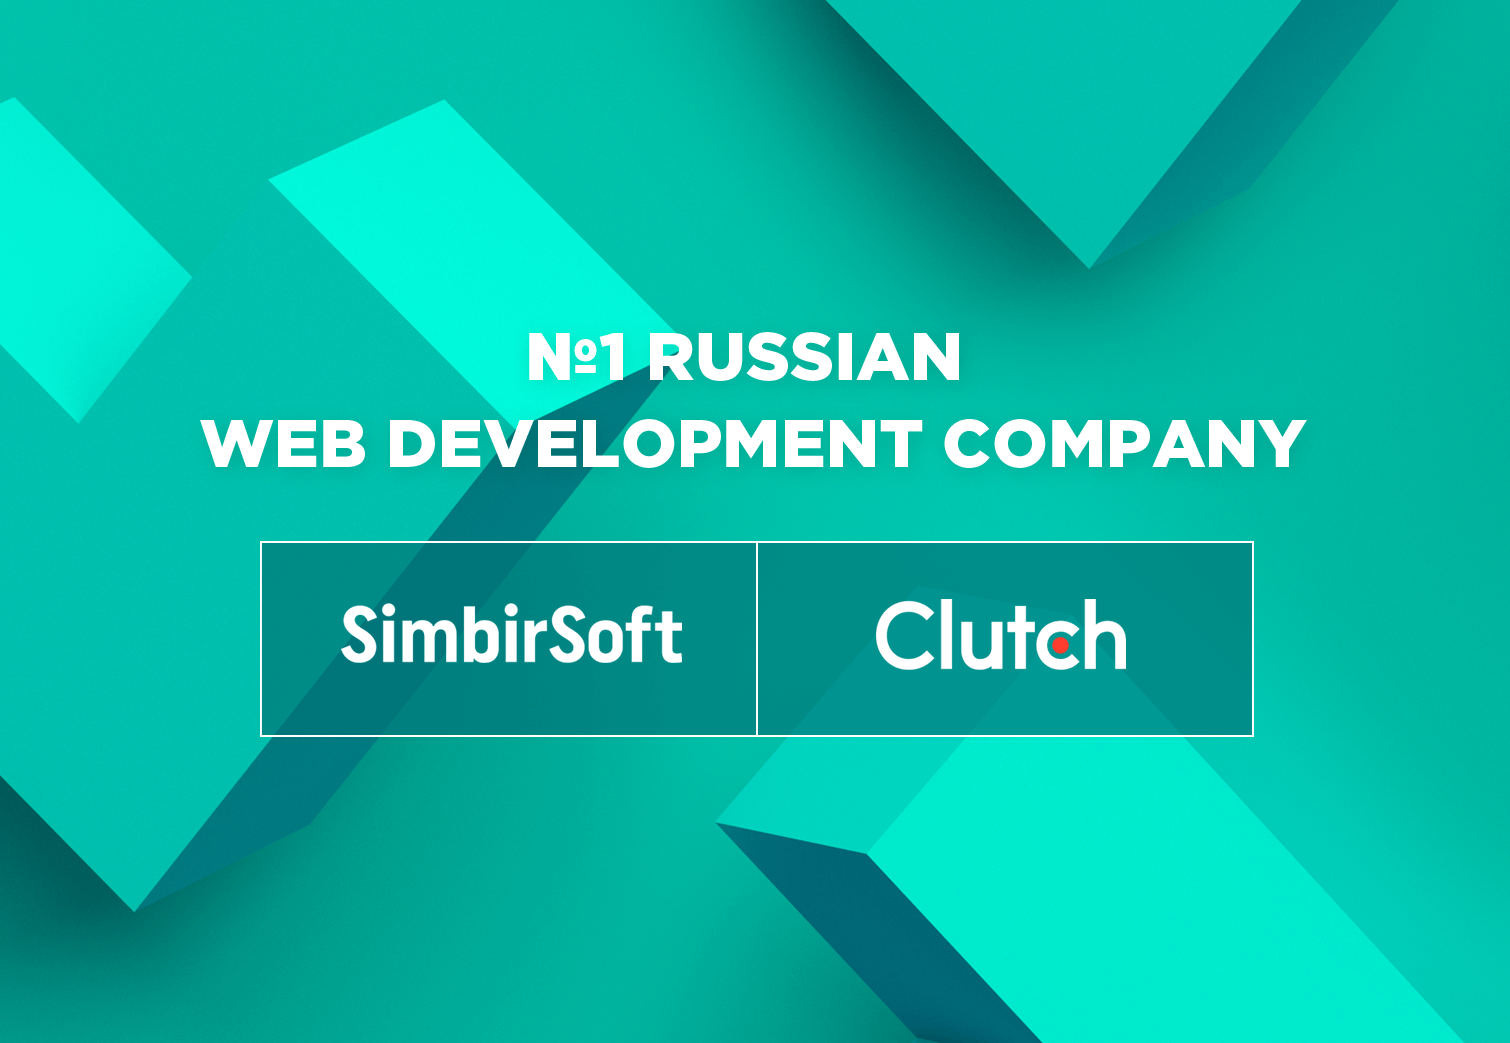 SimbirSoft is №1 Web Development Company in Russia According to Clutch